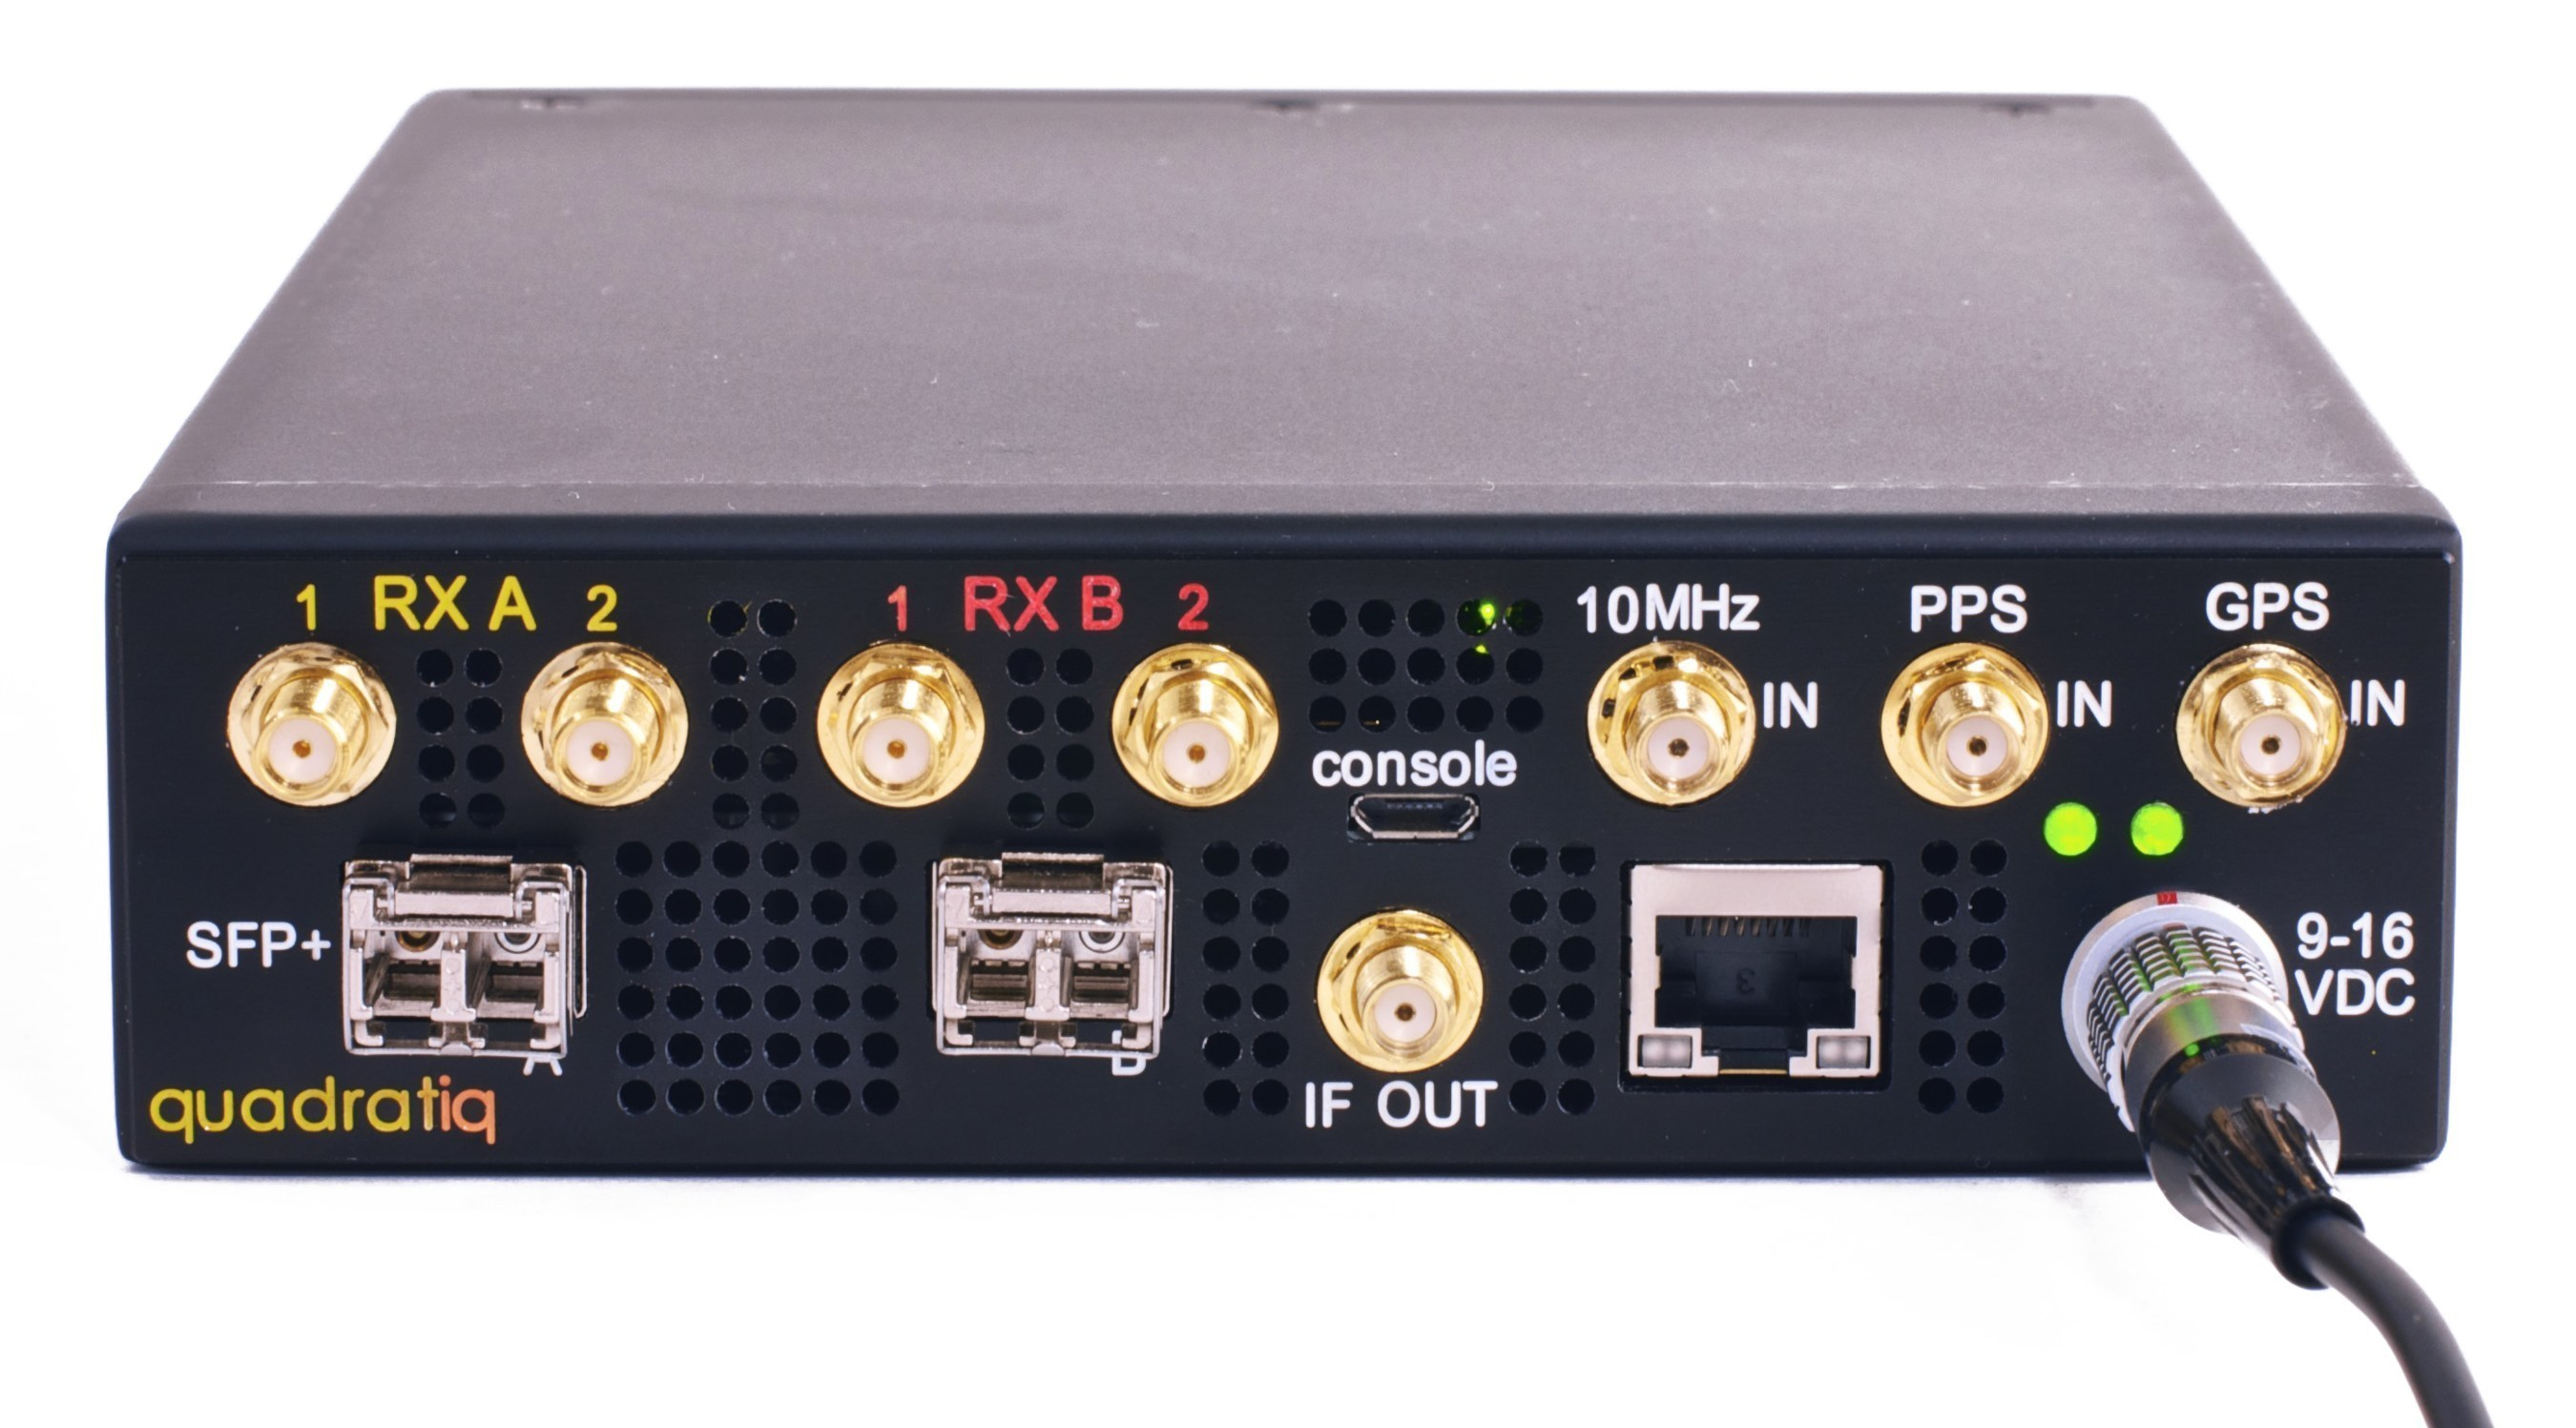 The Epiq Solutions Quadtratiq combines four RF receivers supporting VITA49 in to a small form factor platform, Quadratiq offers a wide RF tuning range, multiple high-speed external data interfaces, and web-server based user interface for simplifying usage.